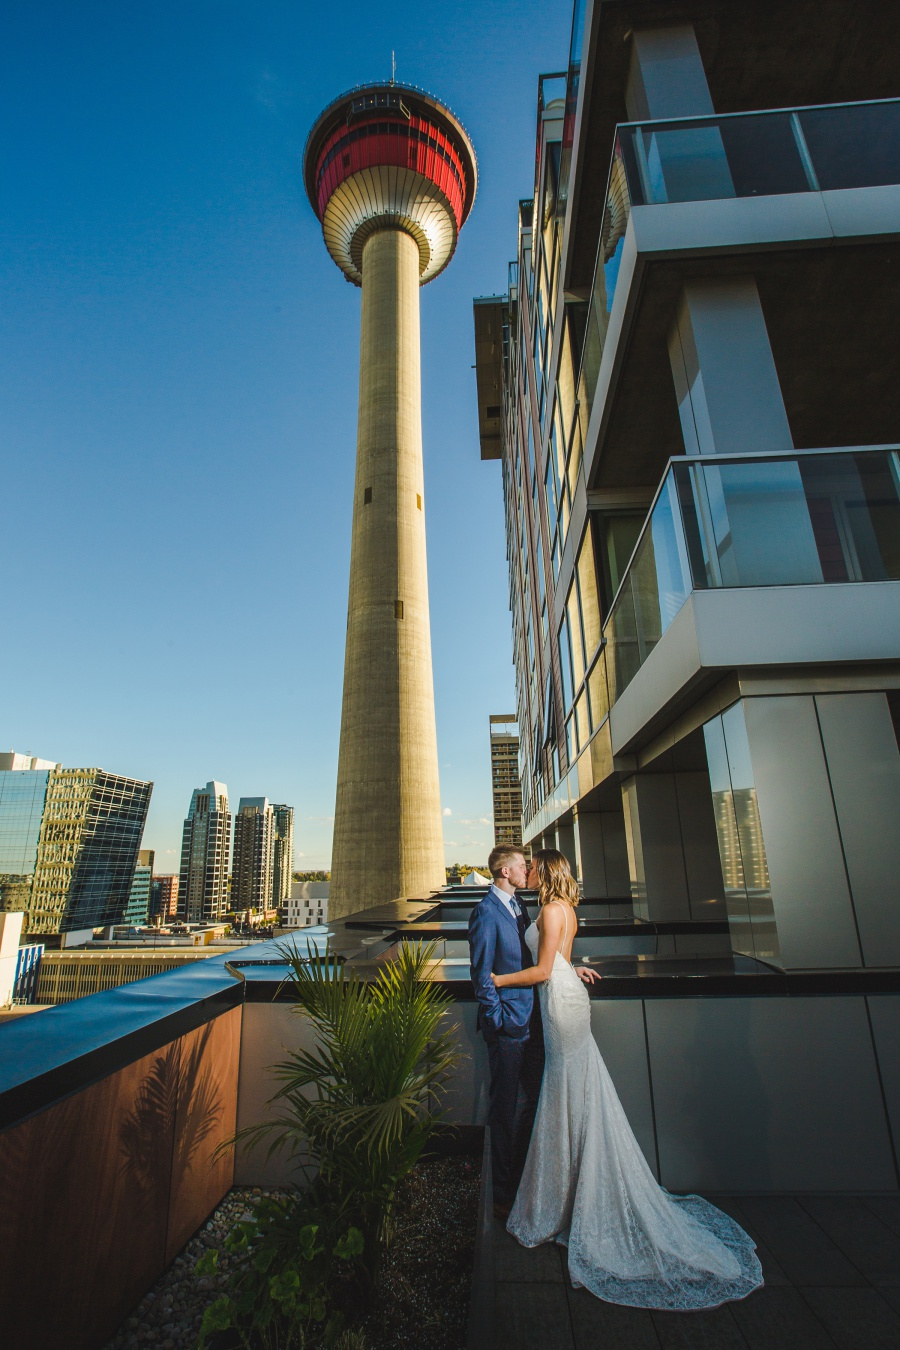 Le Germain Calgary Rooftop Wedding calgary tower